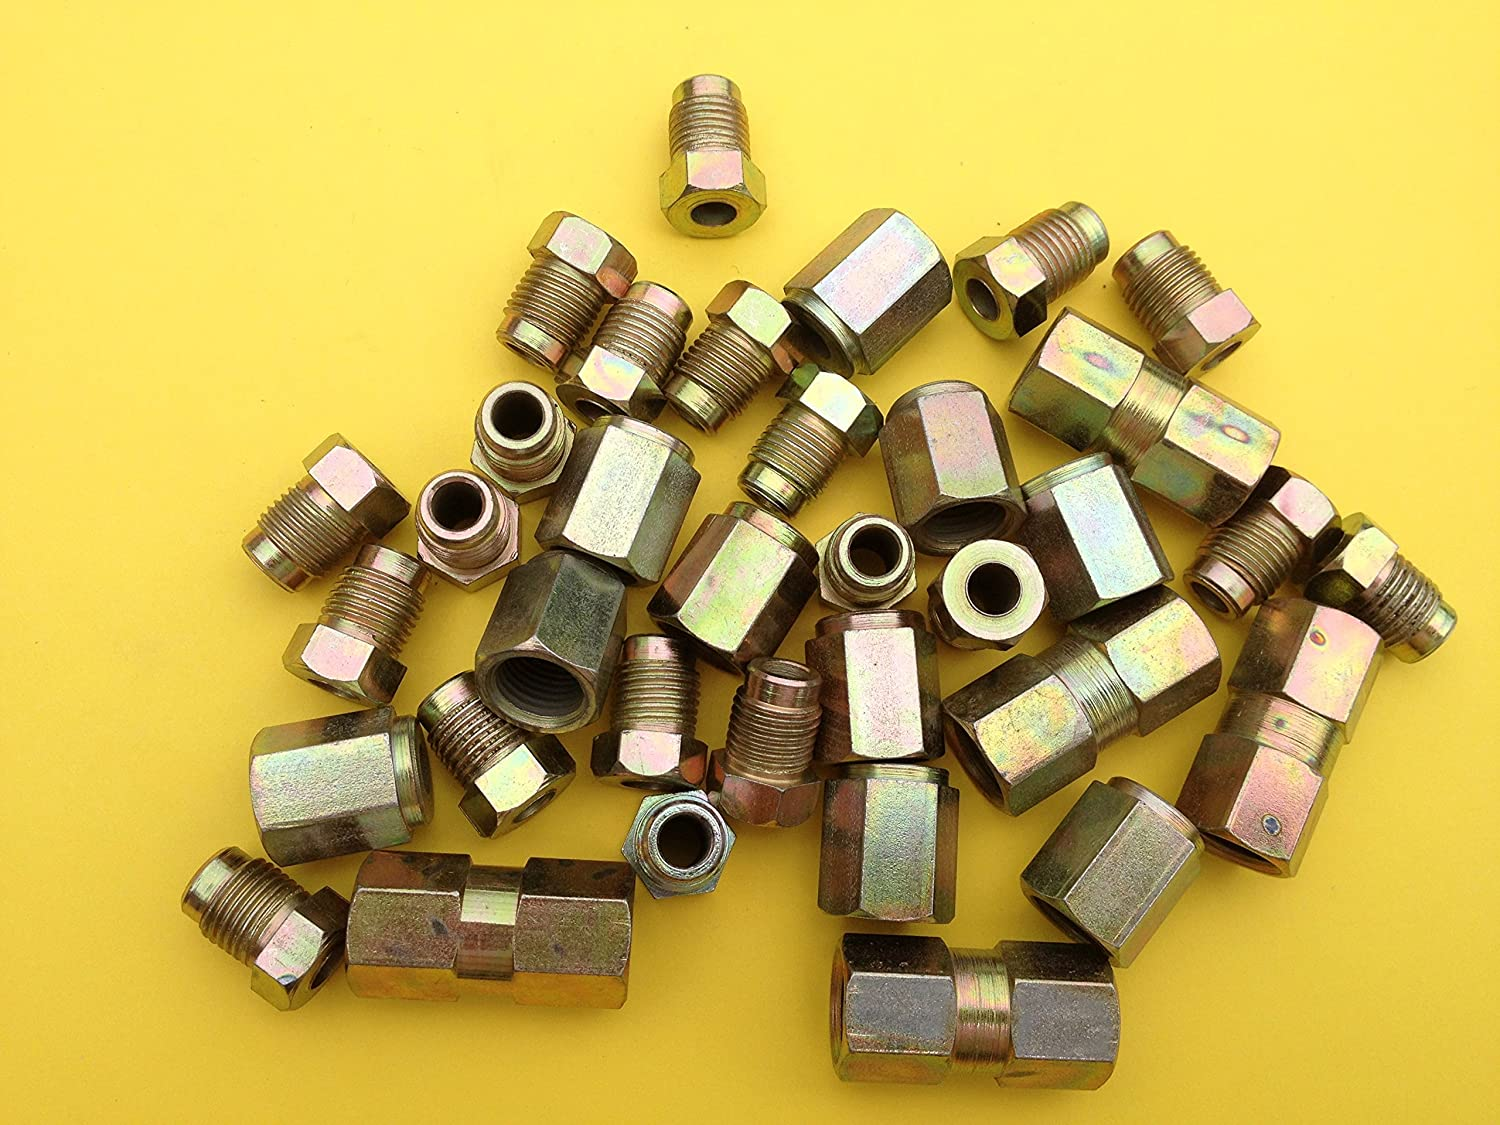 Pack 100 10mm mixed male and female brake pipe nuts